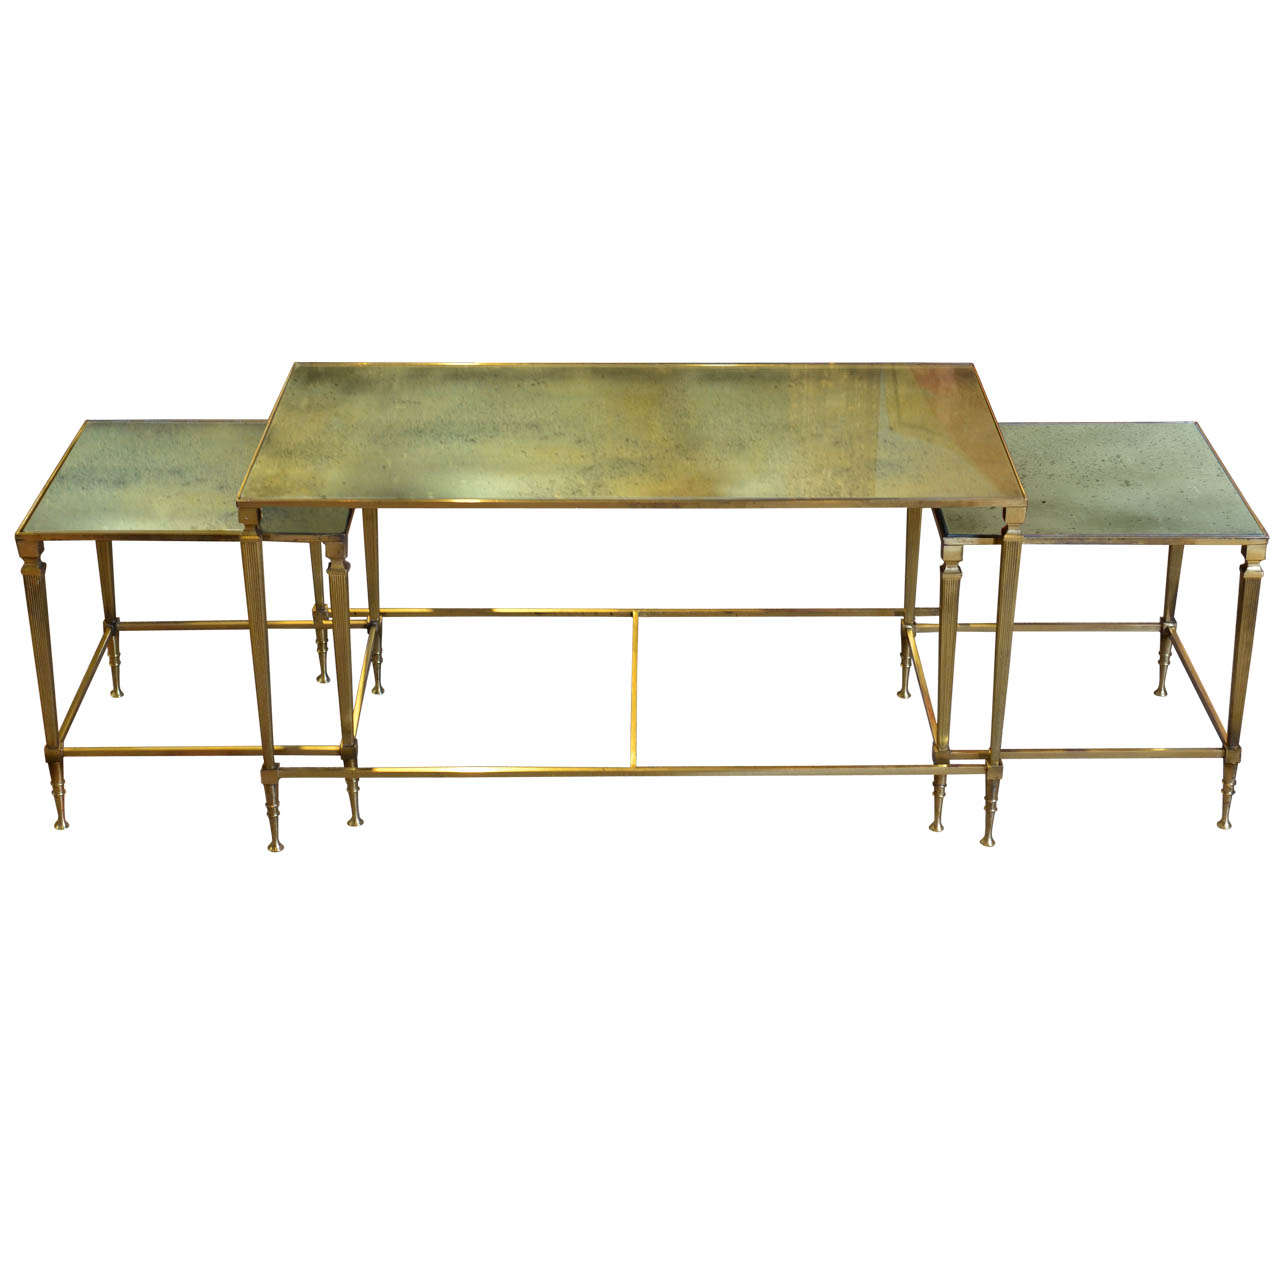 Vintage Brass And Mirrored Coffee Table At 1stdibs